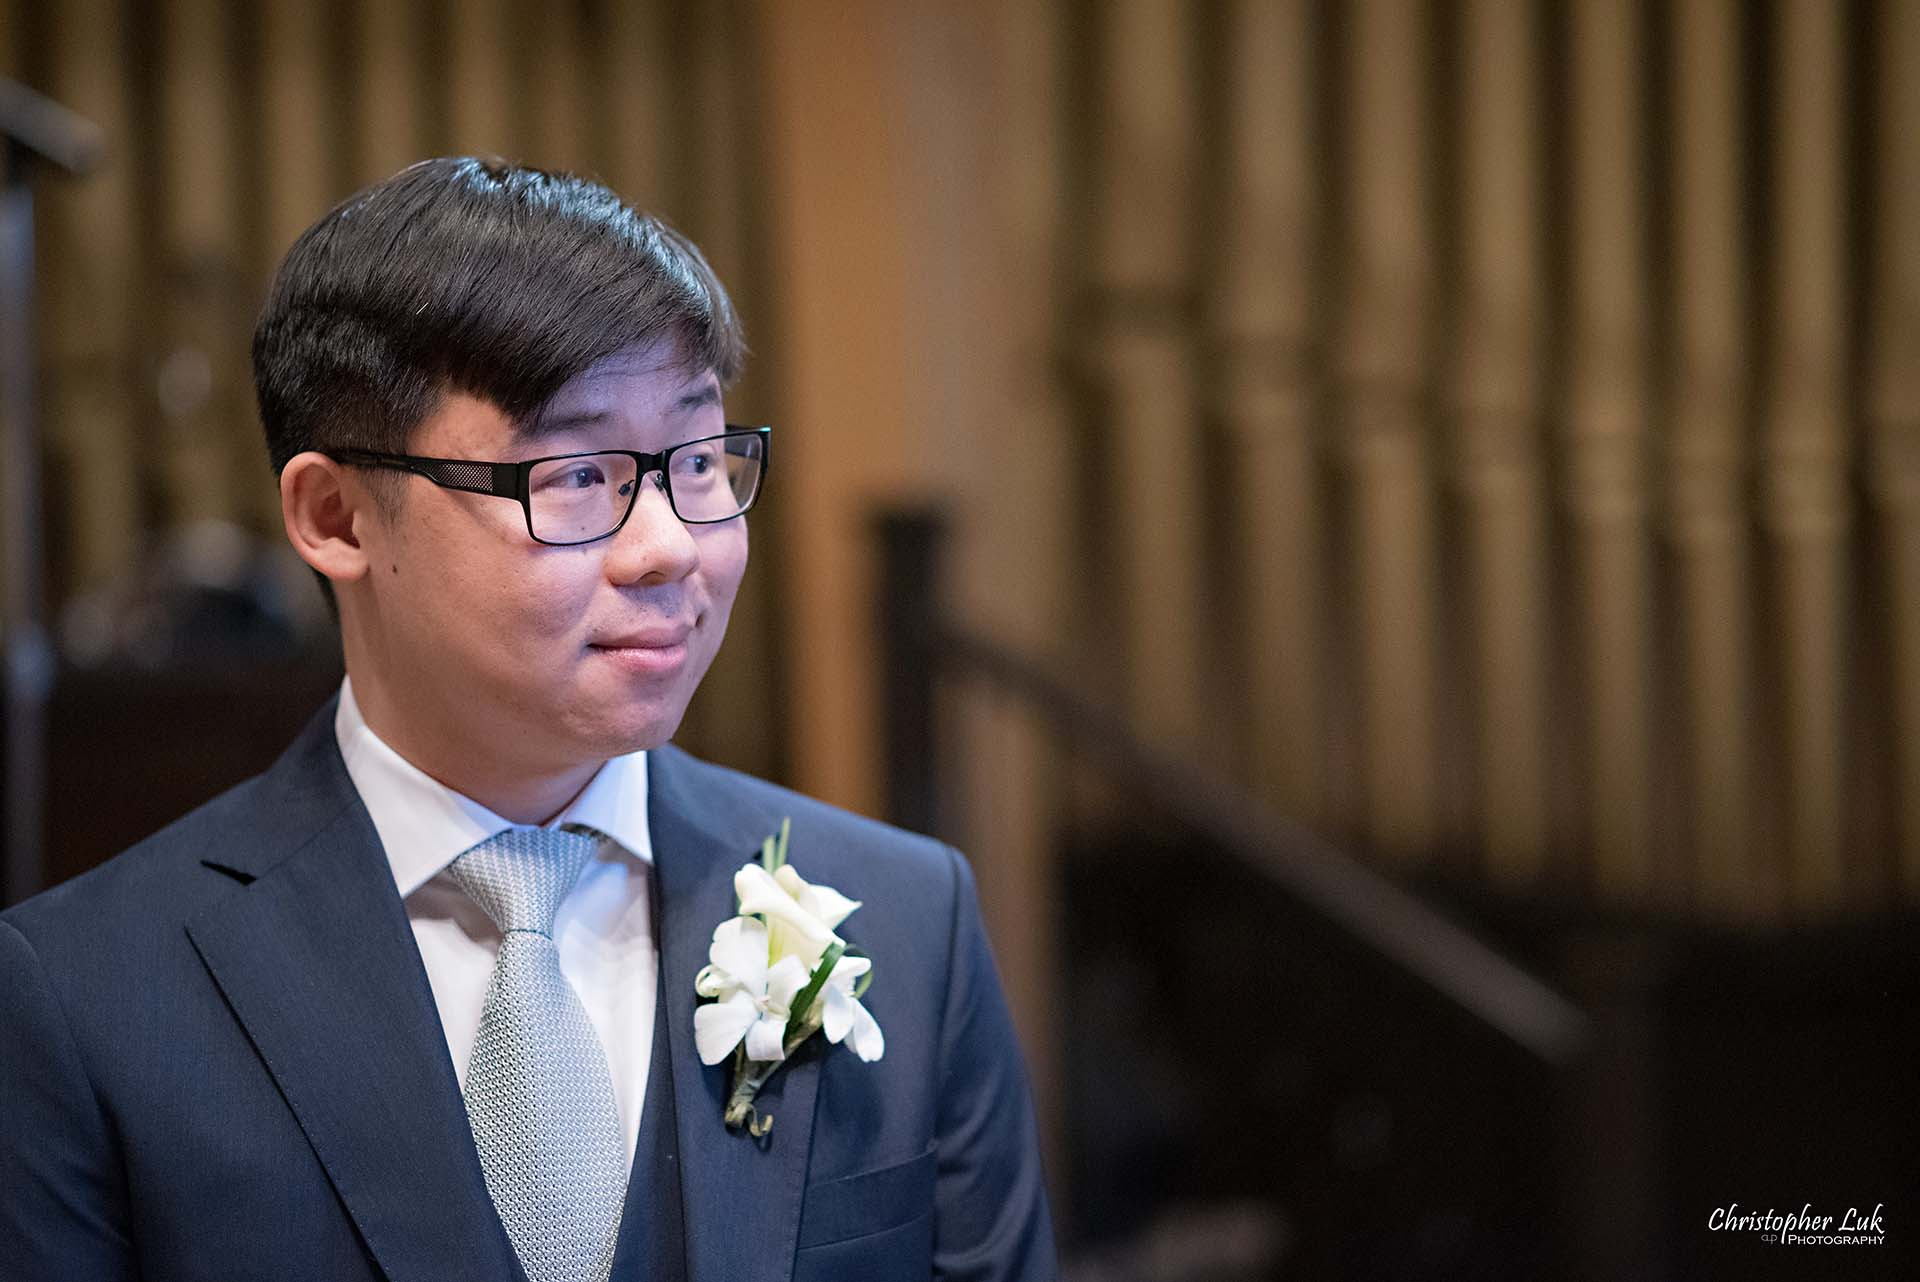 Christopher Luk Toronto Wedding Photographer - Natural Candid Photojournalistic Groom Immanuel Baptist Church Ceremony Reaction Smile Anticipation